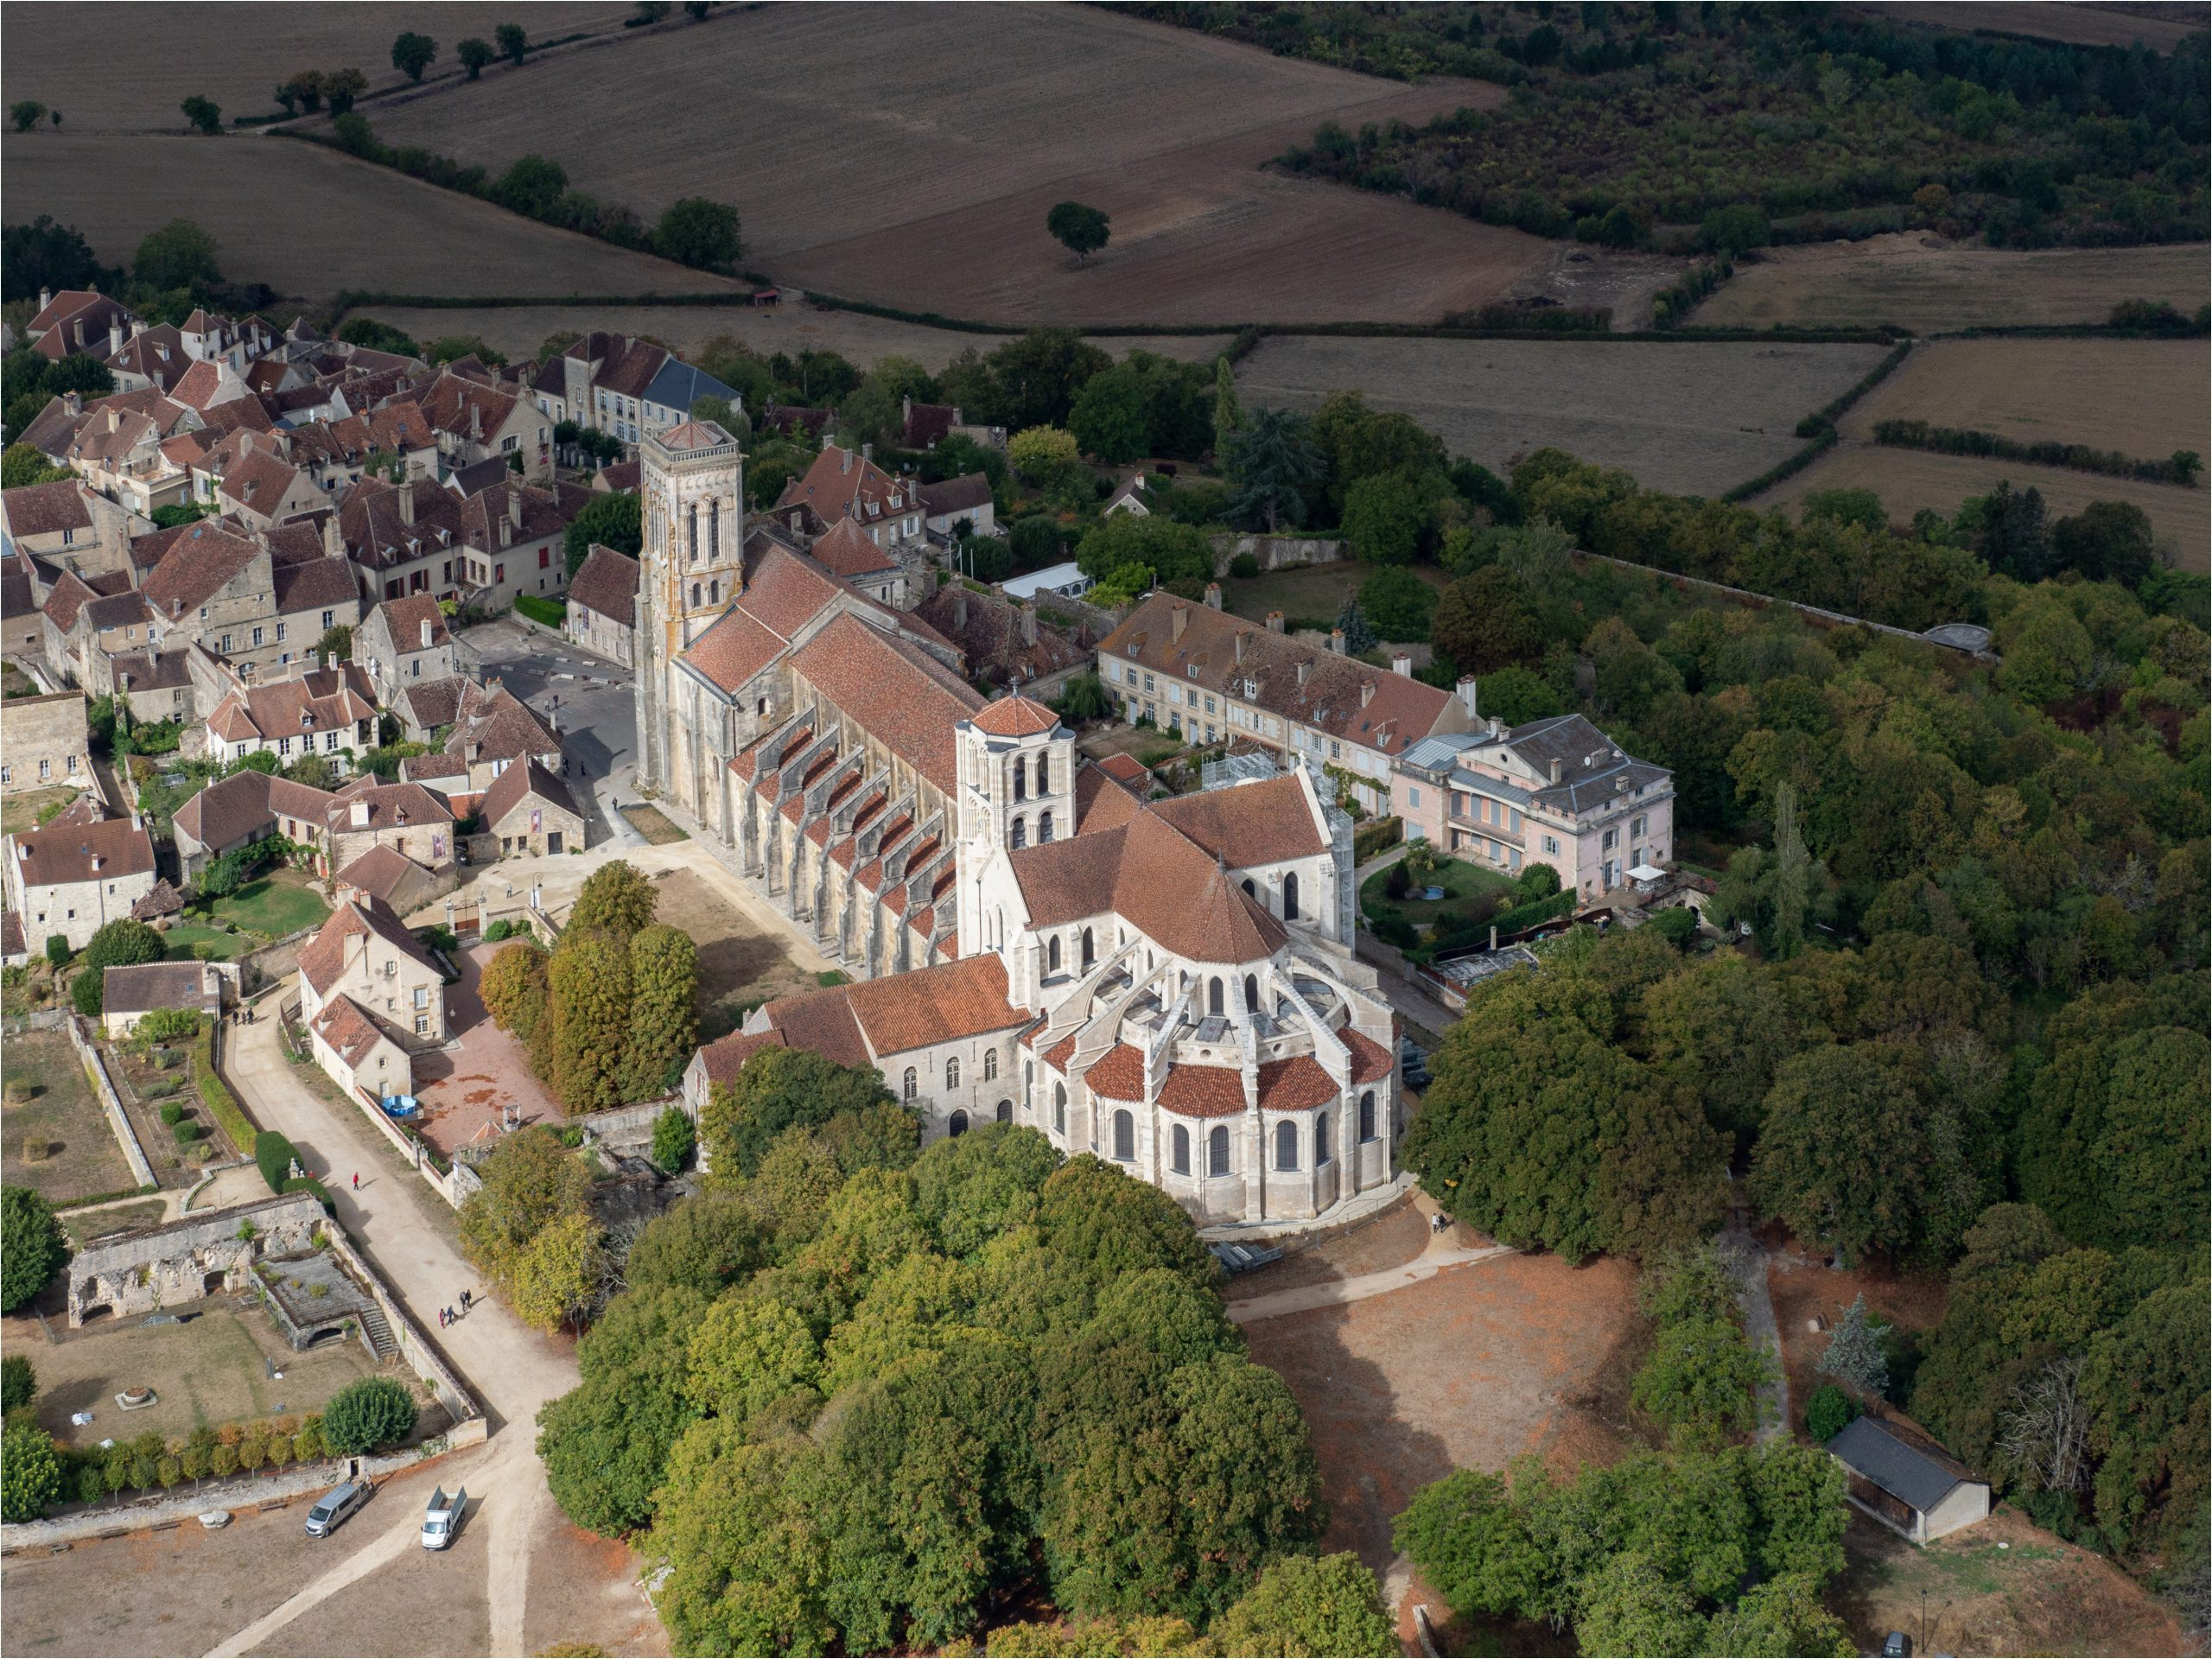 Aerial,View,Of,The,Famous,Basilica,Of,Vézelay,In,The